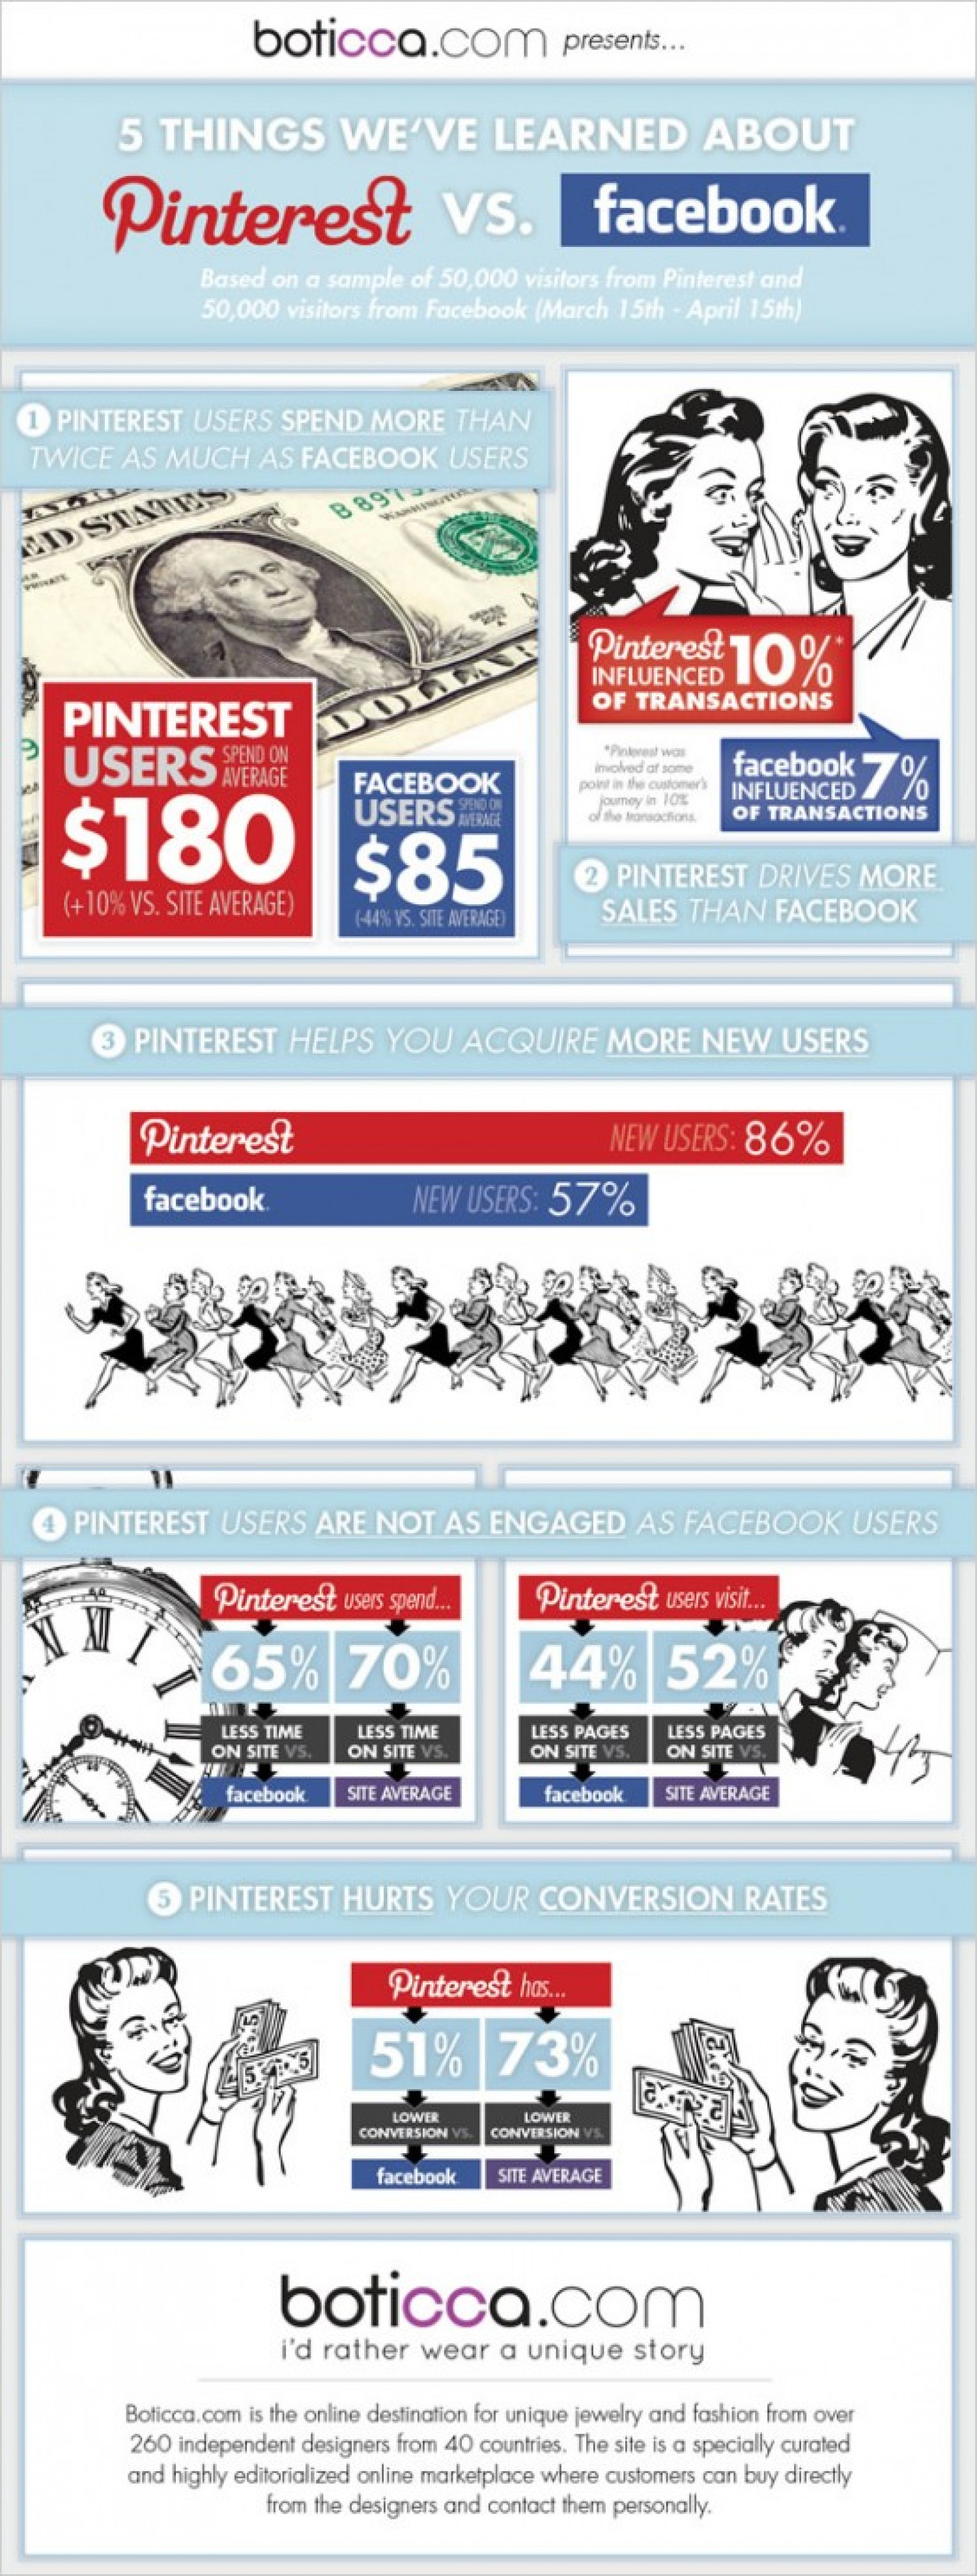 INFOGRAPHIC: Facebook vs. Pinterest (5 Things We've Learned) Infographic